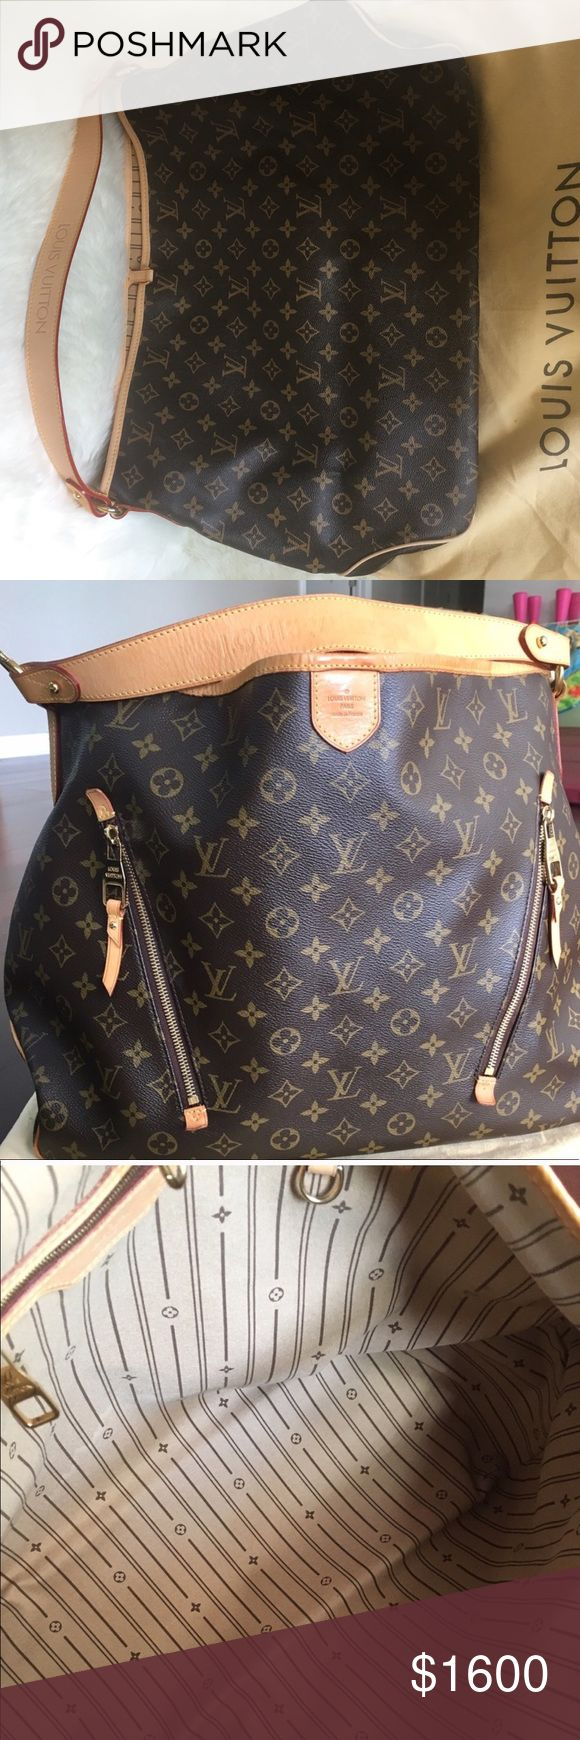 Louis Vuitton Bag Louis Vuitton Monogram Print Bag. Big bag with lots of room from LV features 2 exterior pocket and 1 interior. Louis Vuitton Bags Hobos